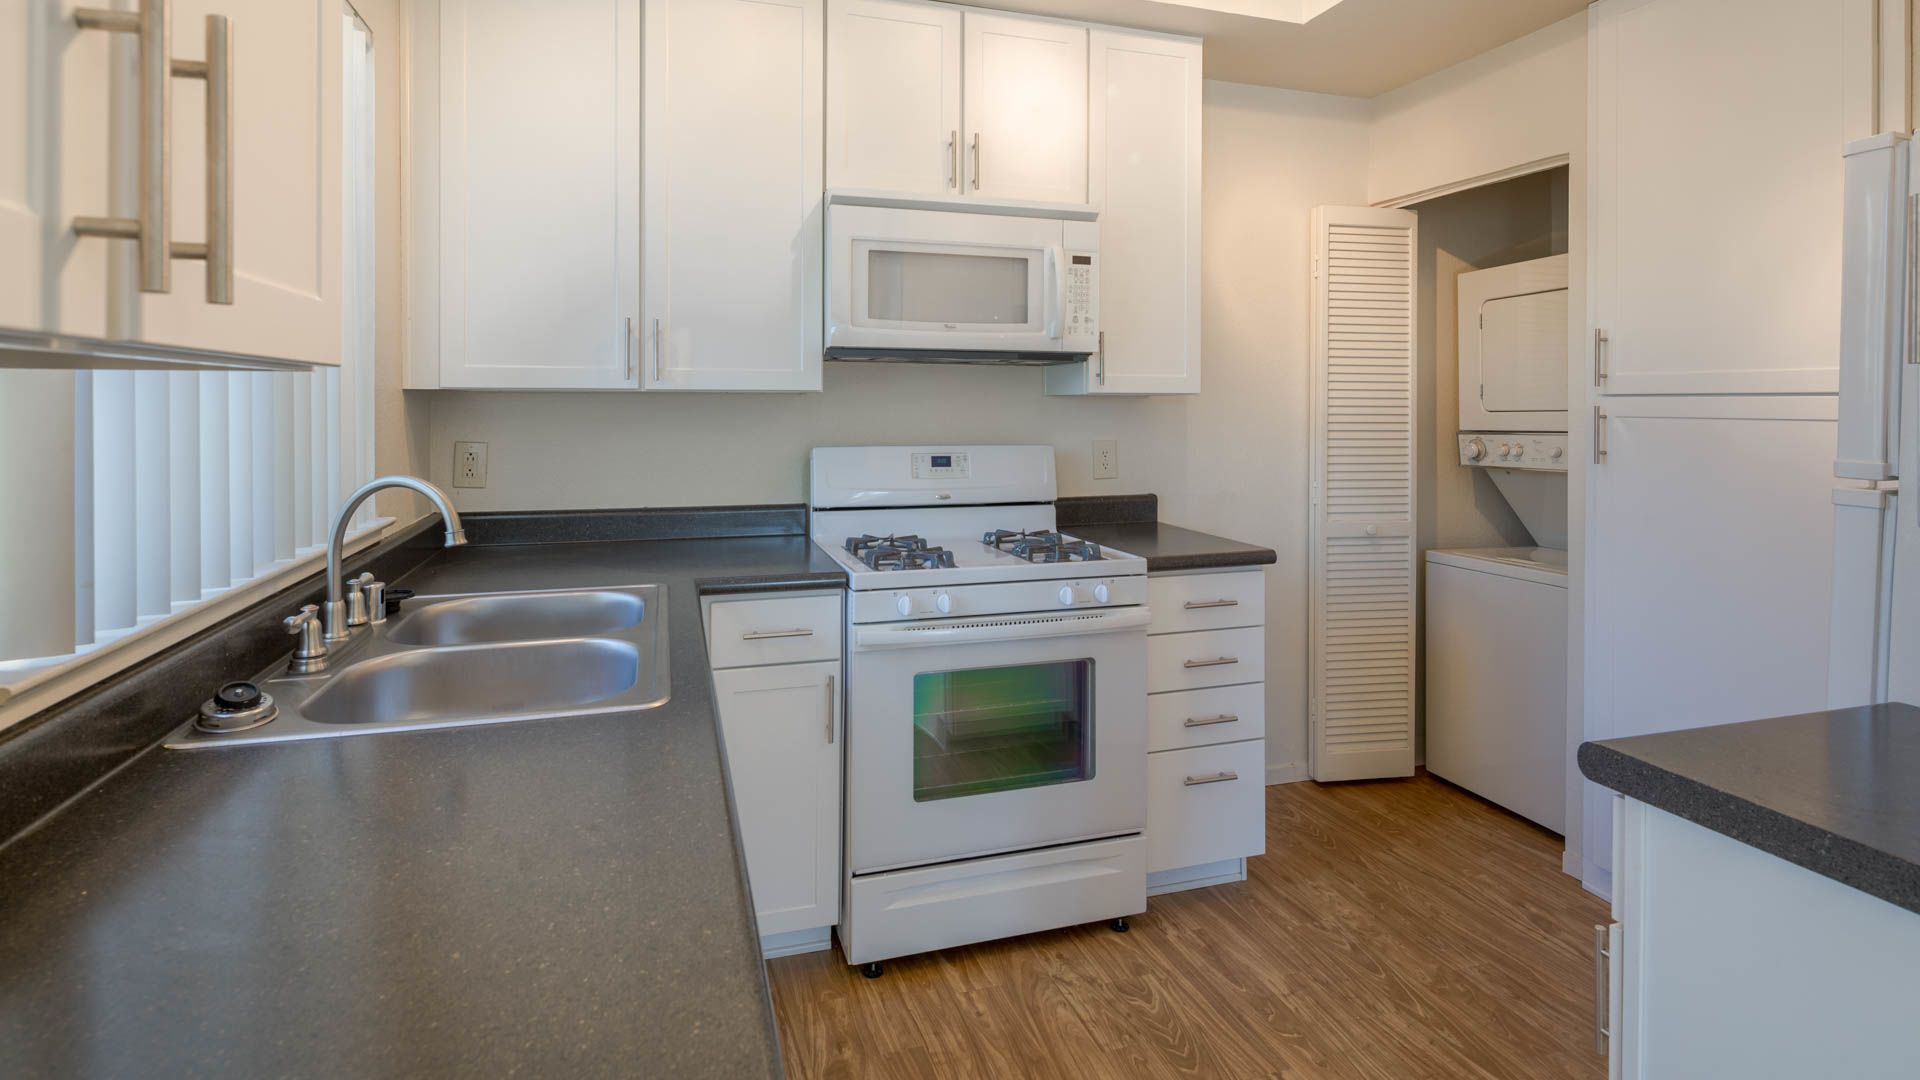 Schooner Bay Apartment Homes - Kitchen